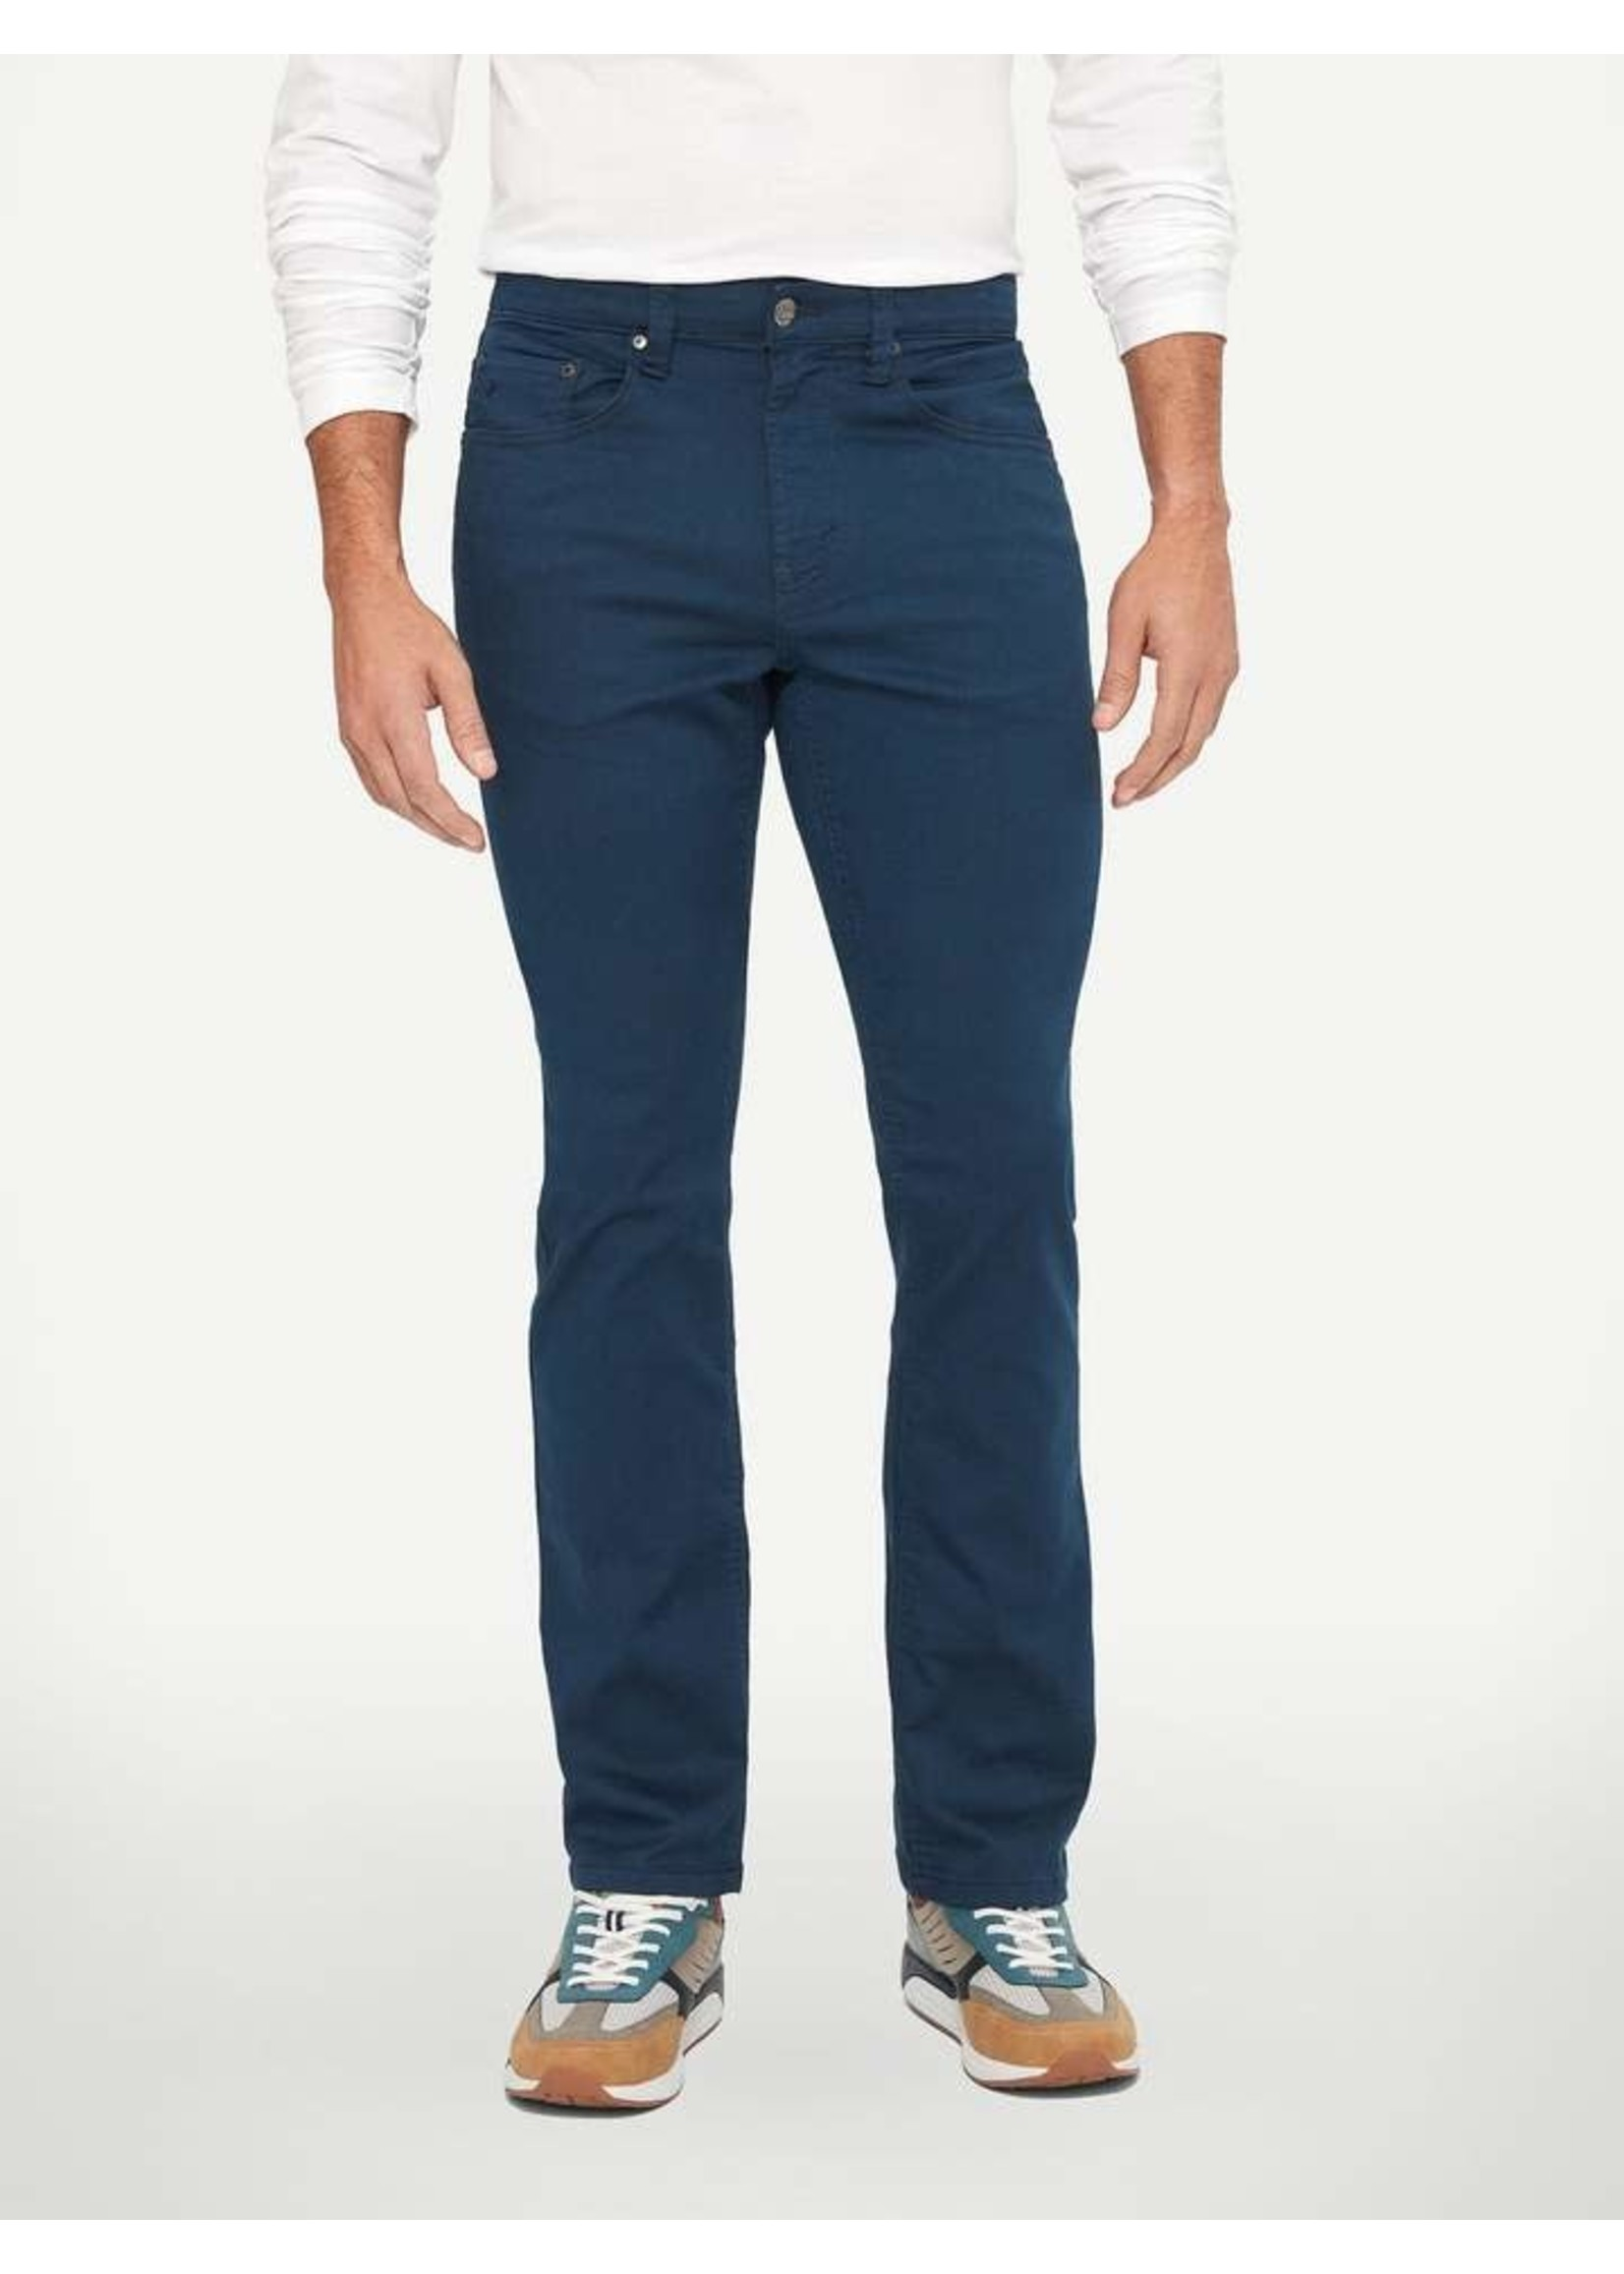 """Lois Jeans Canada The """"Brad Slim 6240-32"""" by Lois Jeans"""